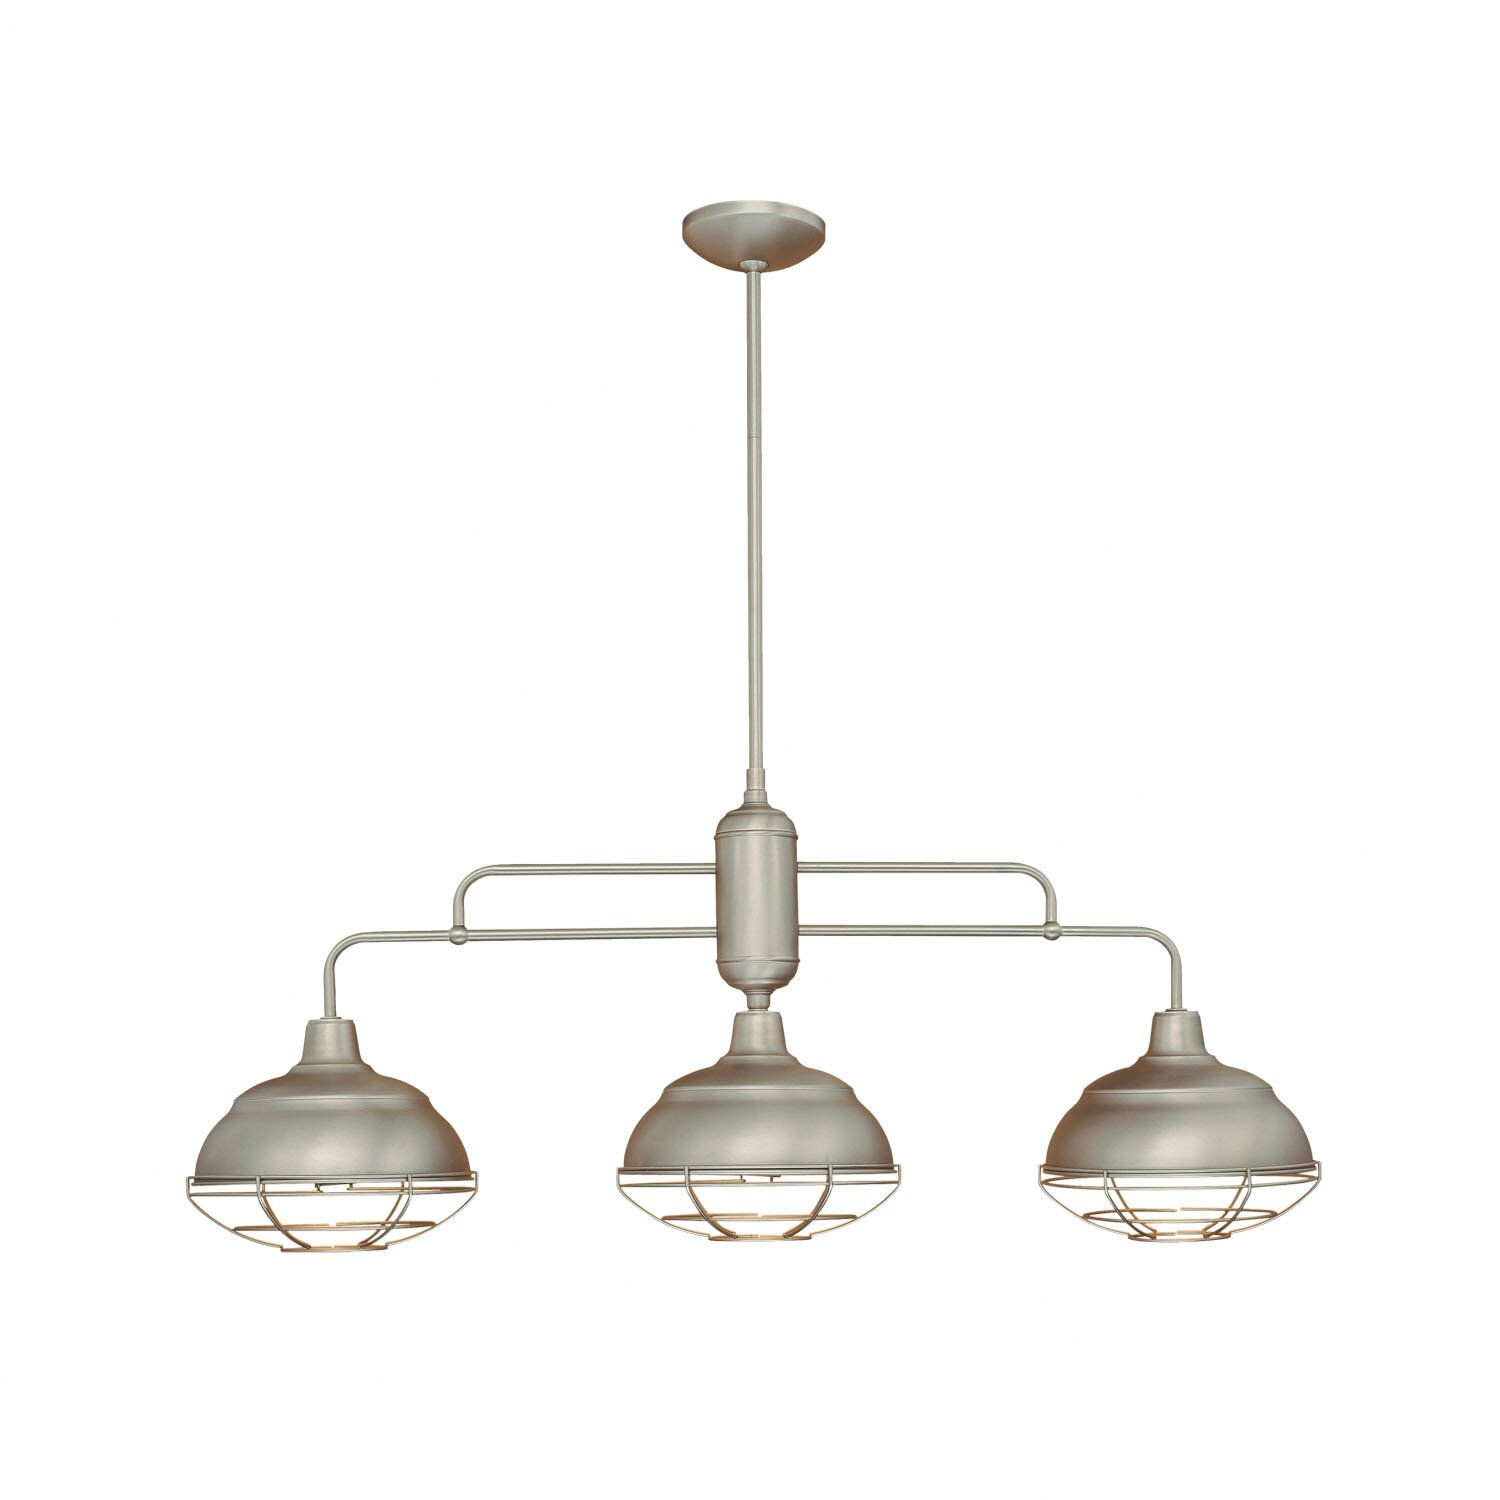 3 light kitchen island pendant picgit